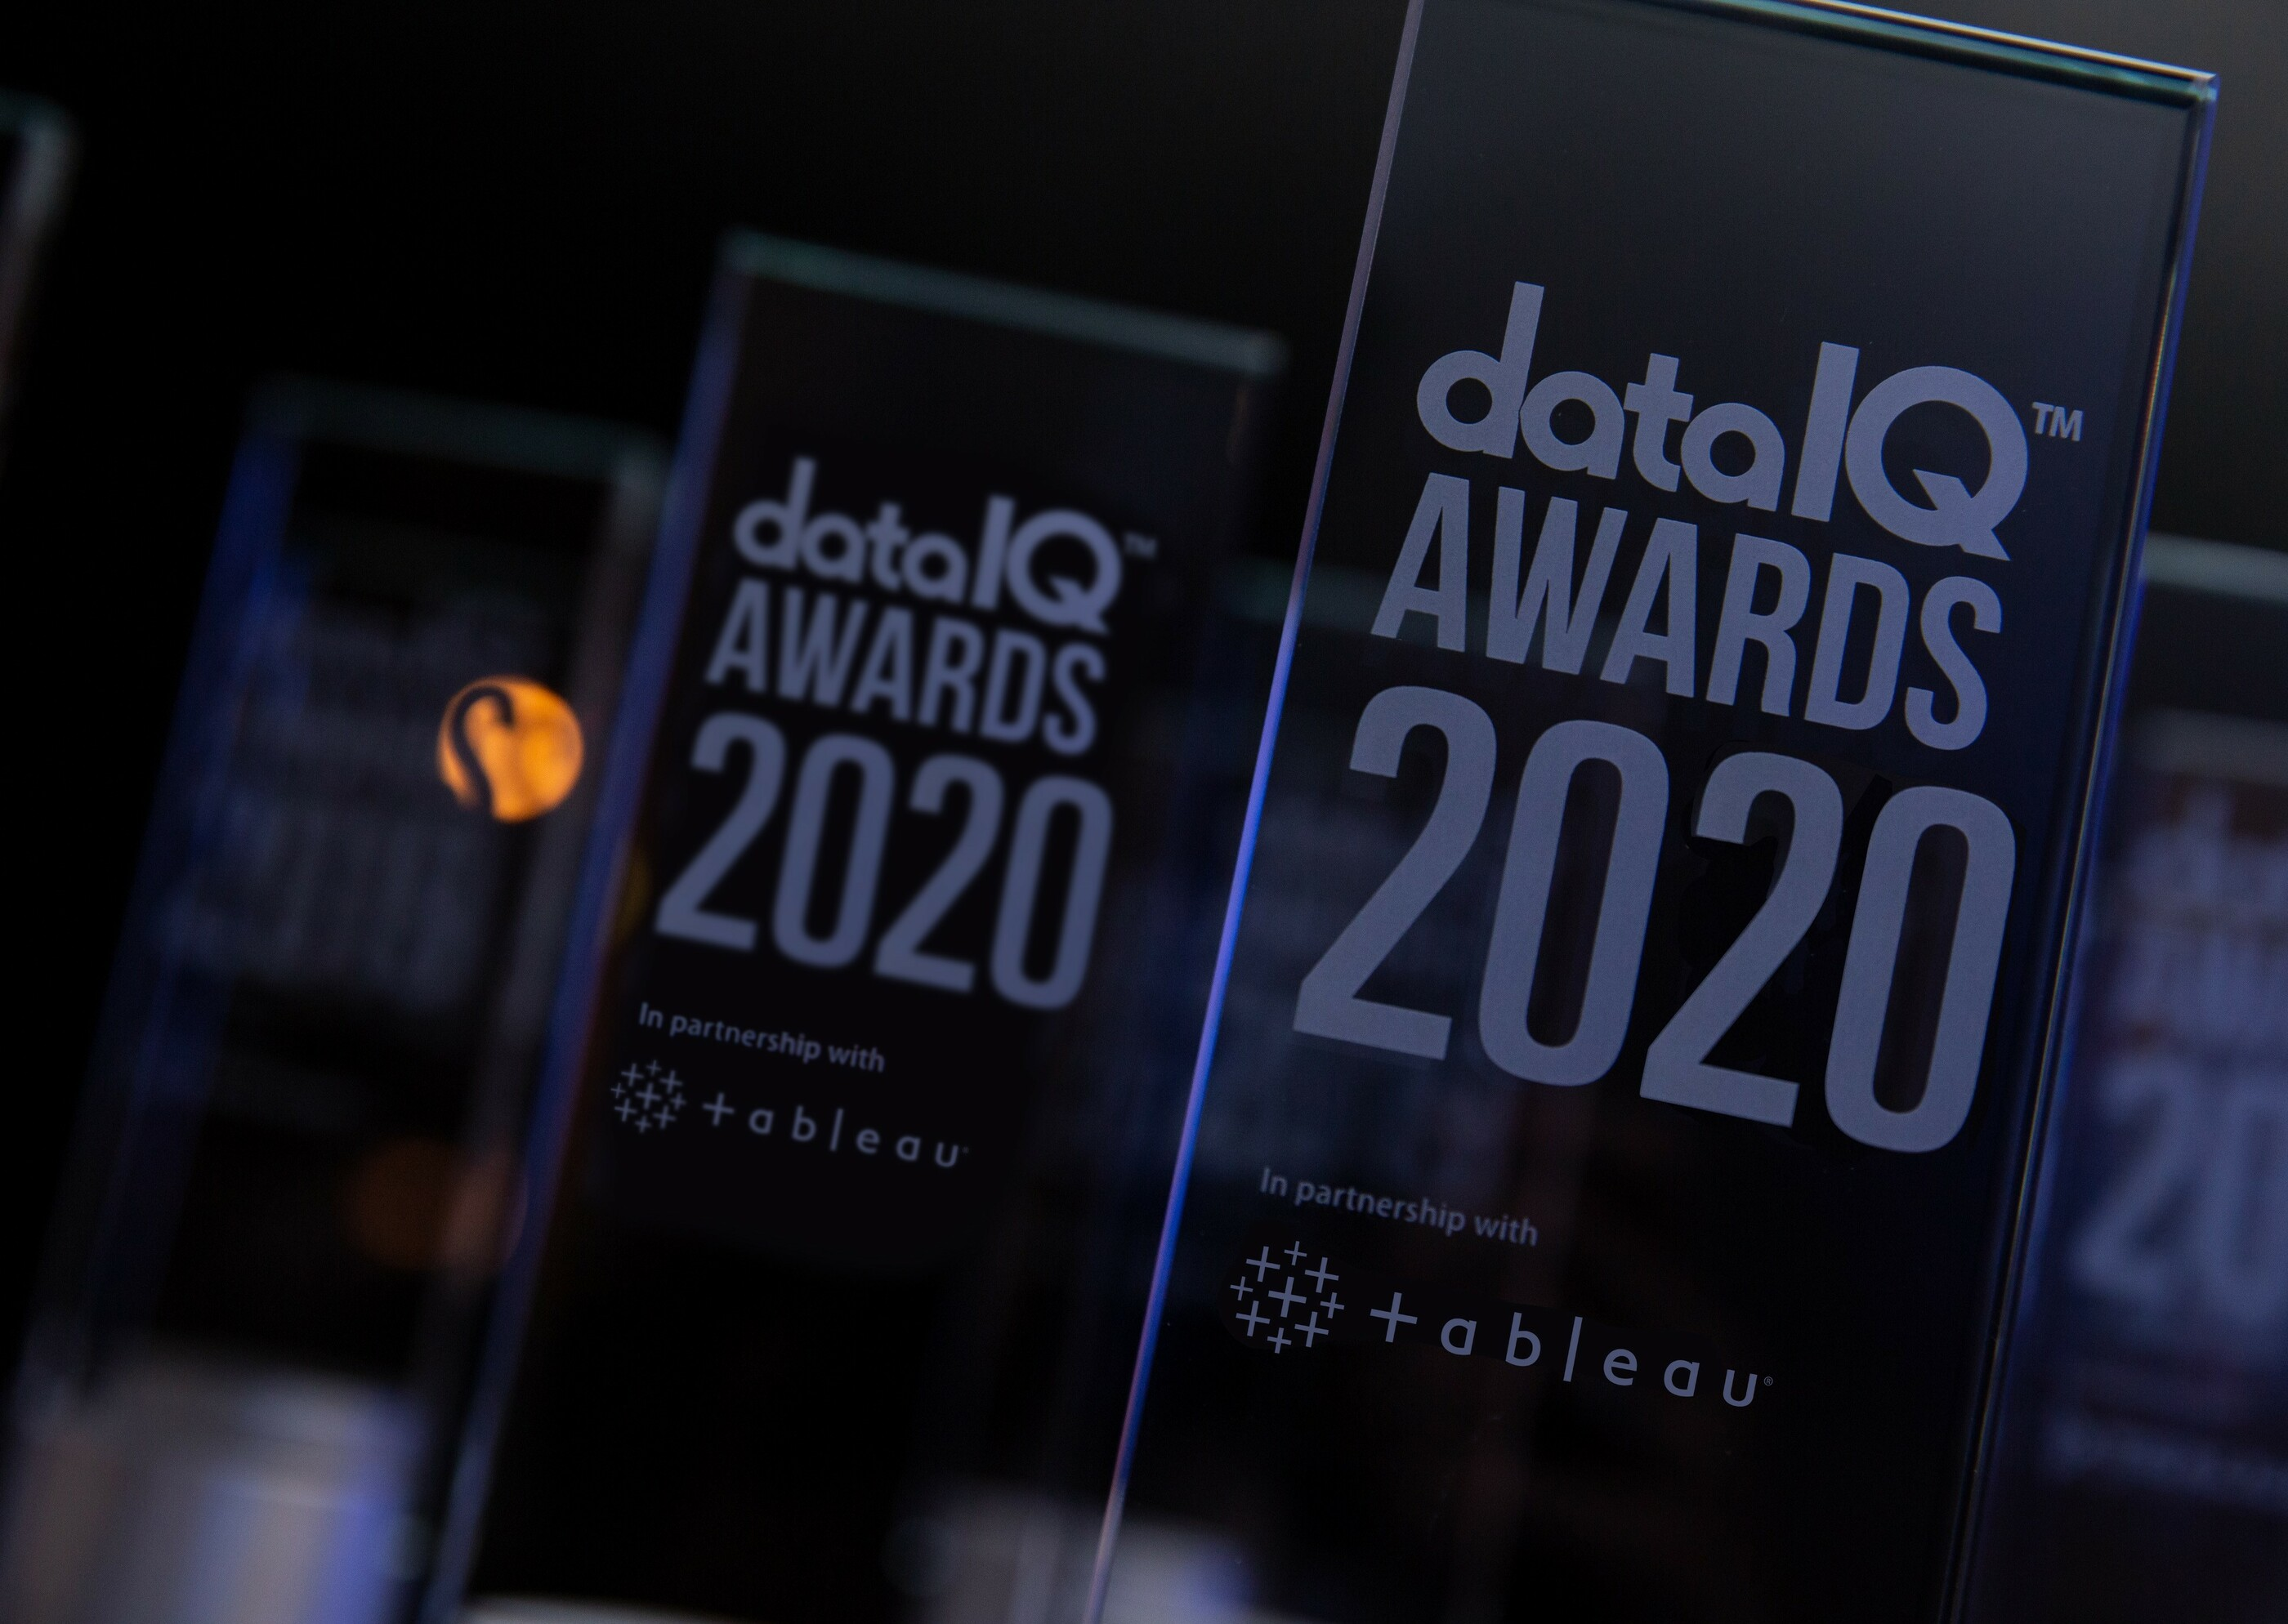 DataIQ Reveals its 2020 Awards Winners